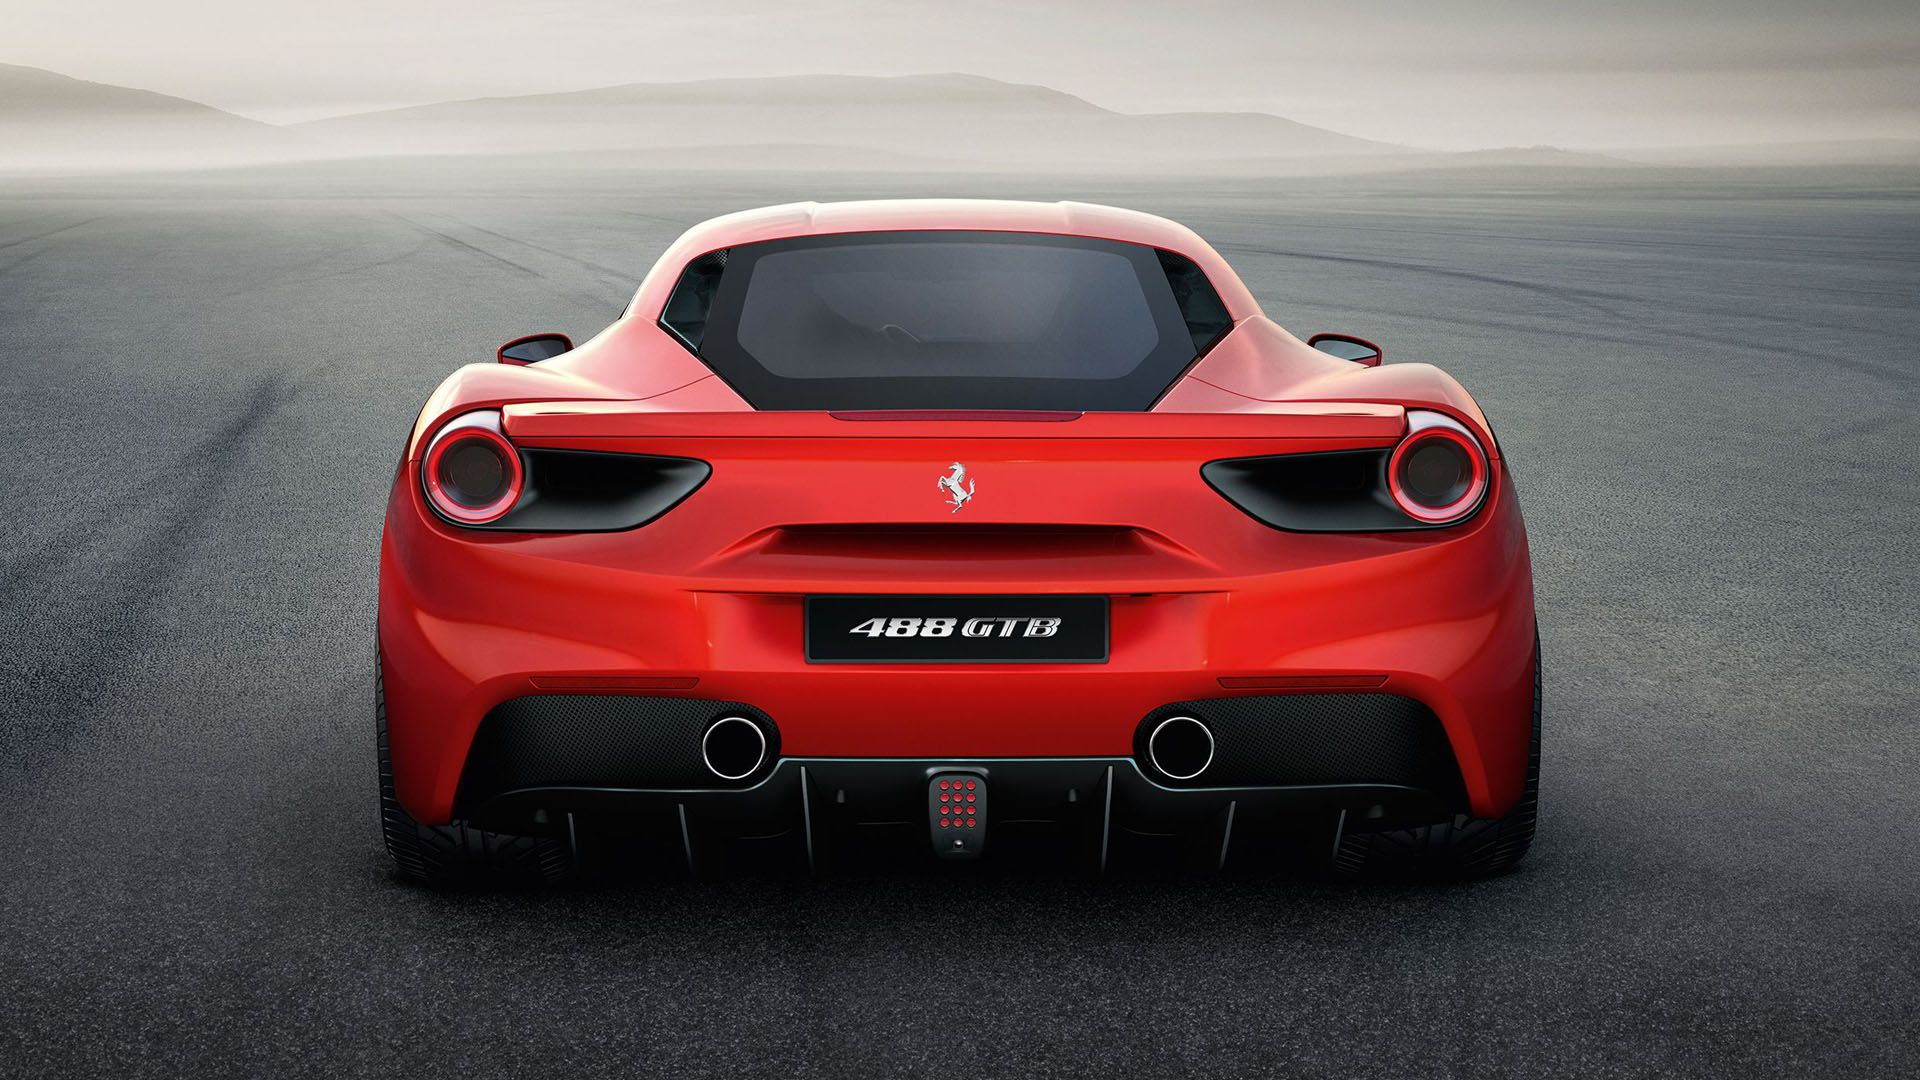 Back View Ferrari 488 Gtb Wallpaper Wallpapers Hd Pinterest